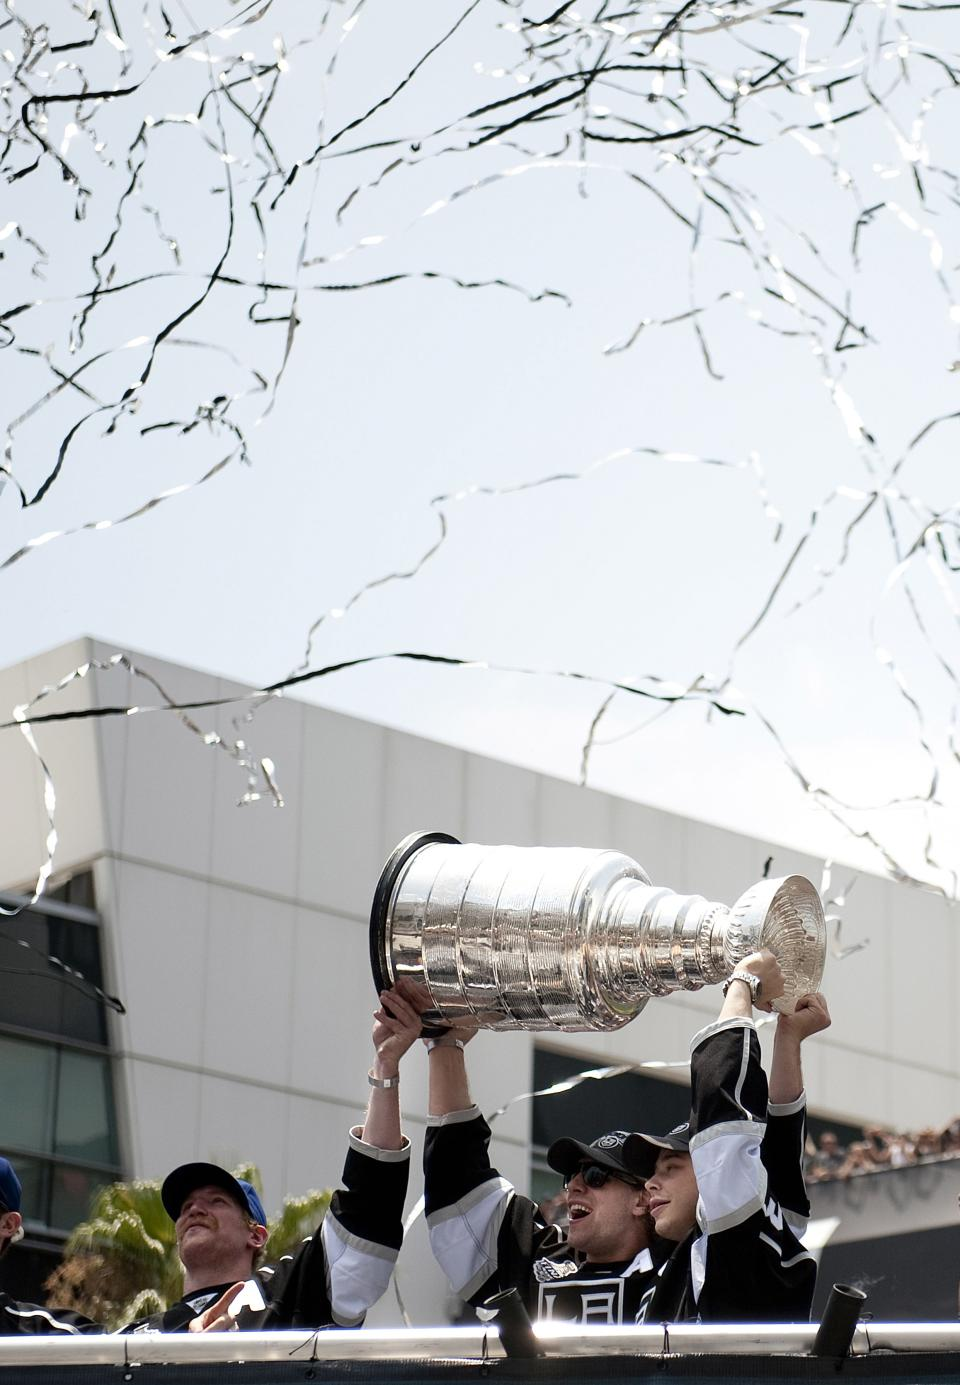 Confettie falls as  Los Angeles Kings players, from left, Matt Greene, Anze Kopitar and Dustin Brown hold up the Stanley Cup during a parade and rally celebrating the team's NHL hockey Stanley Cup championship in Los Angeles, Thursday, June 14, 2012.  (AP Photo/Grant Hindsley)